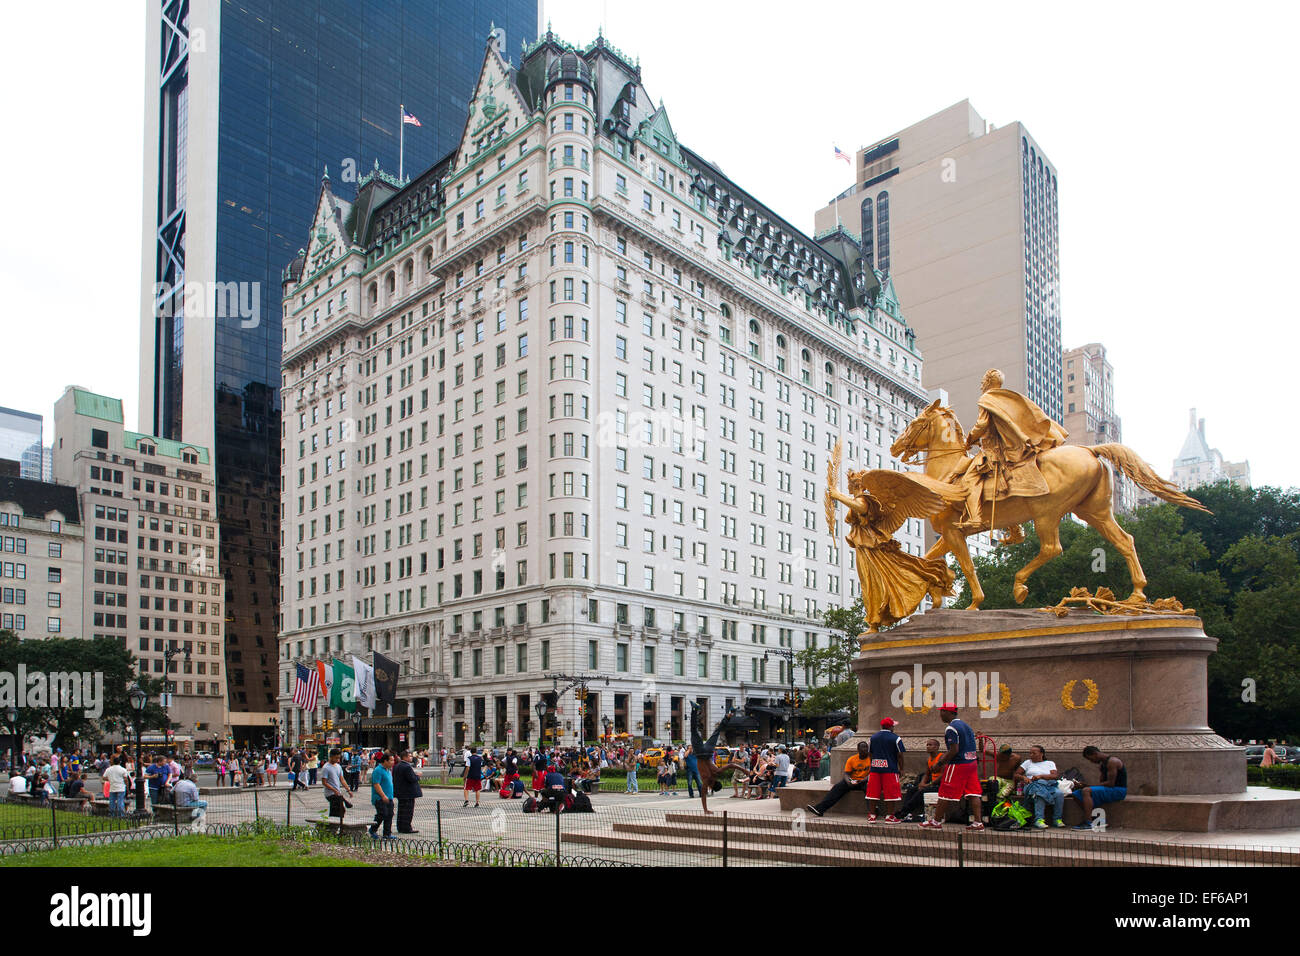 Plaza Hotel Central Park South And Grand Army Plaza